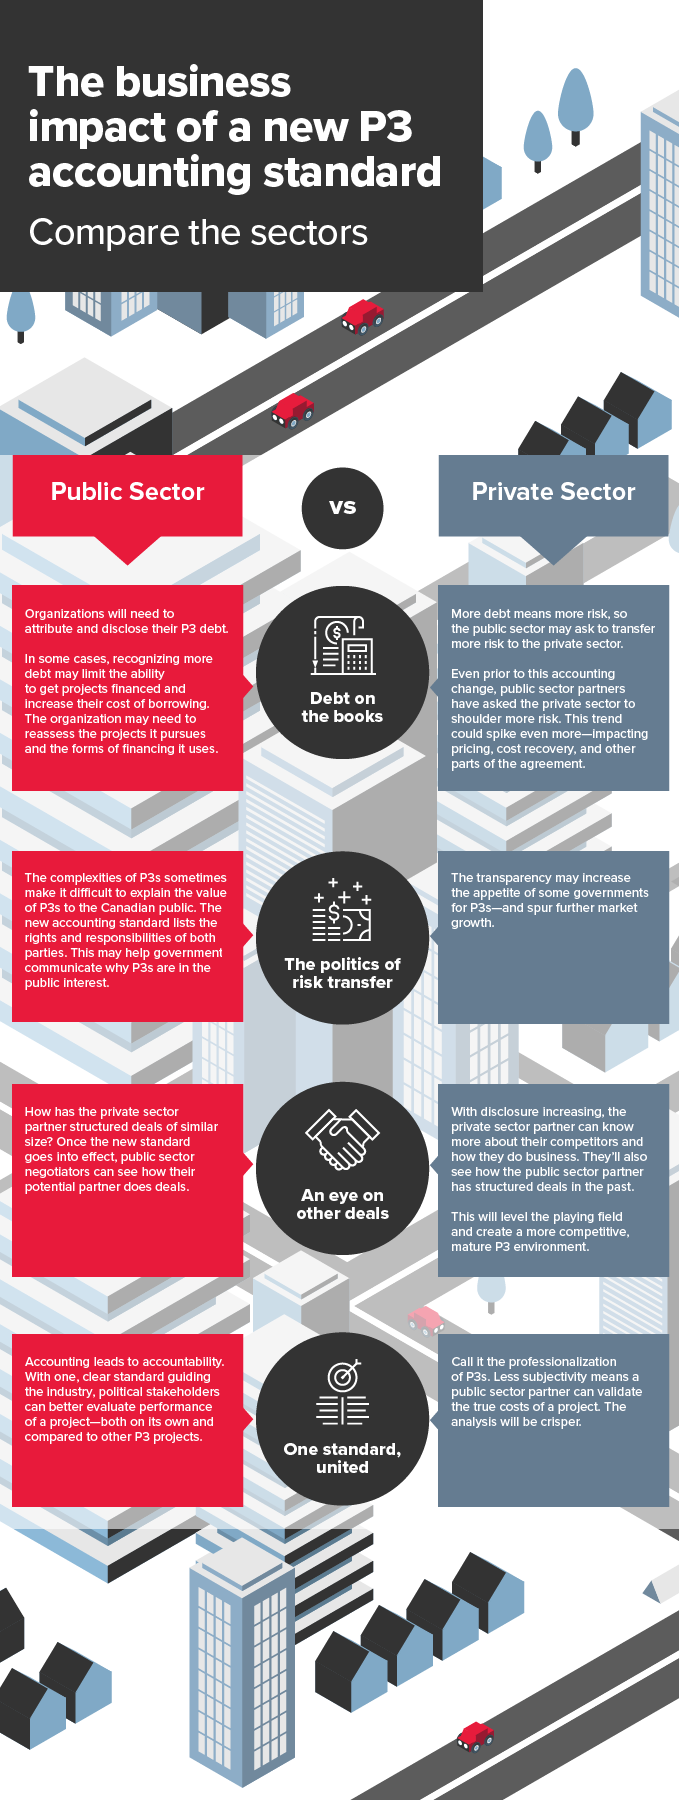 Click to view our infographic about P3 accounting: 1 new standard, 2 sectors, and the public-private repercussions